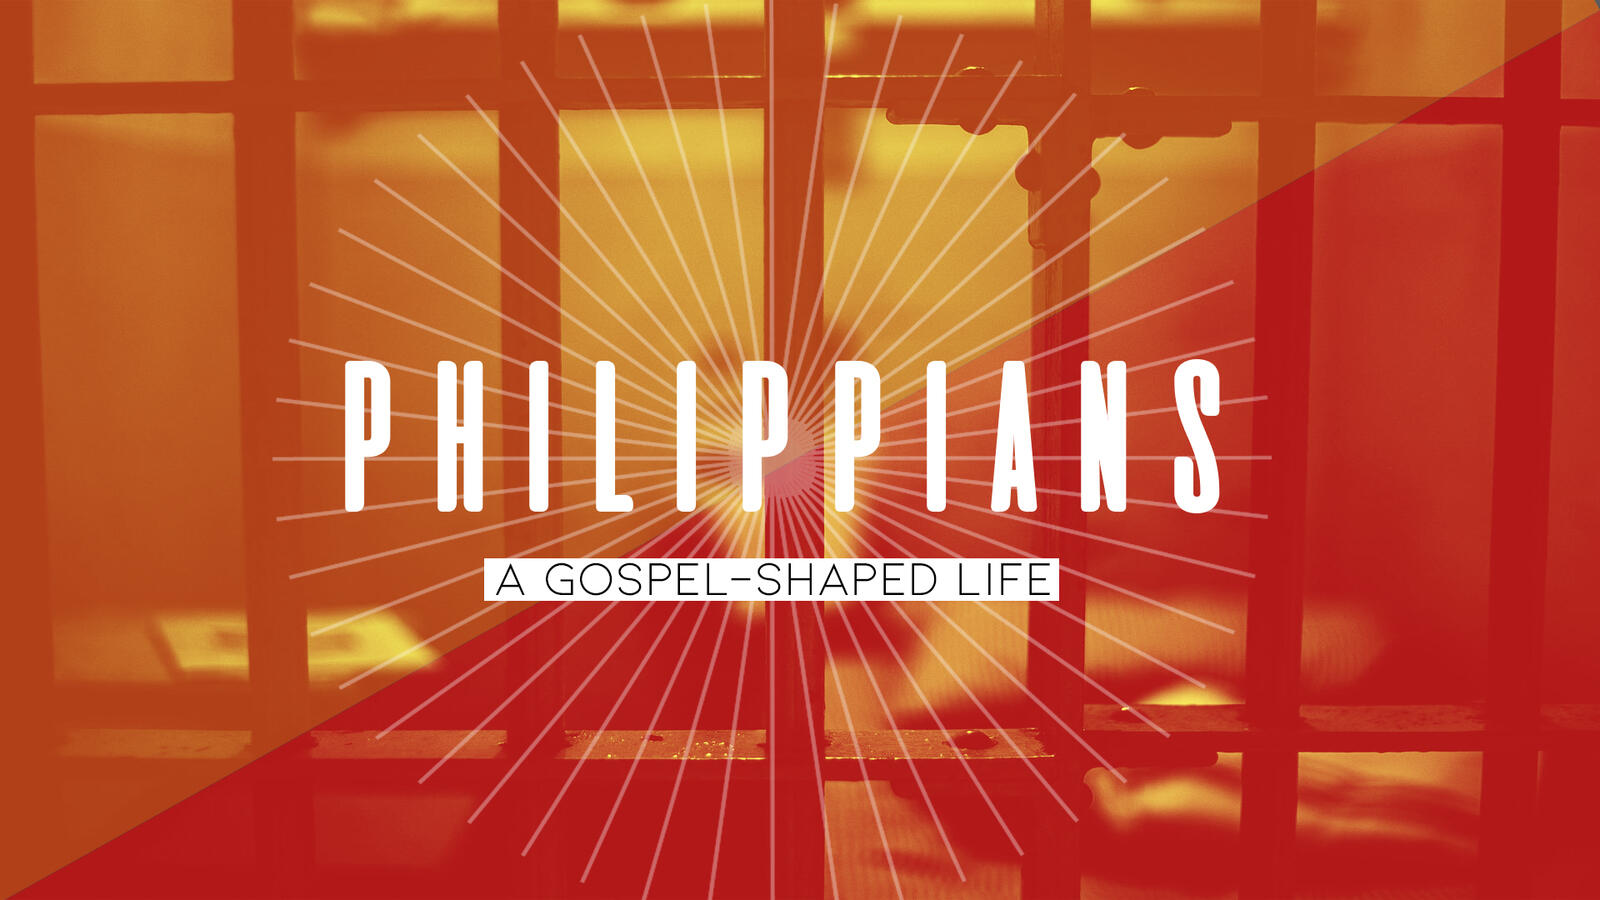 04/14/19 - Kyle Estepp - Philippians 2:1-5 (Recorded at Cherrydale)